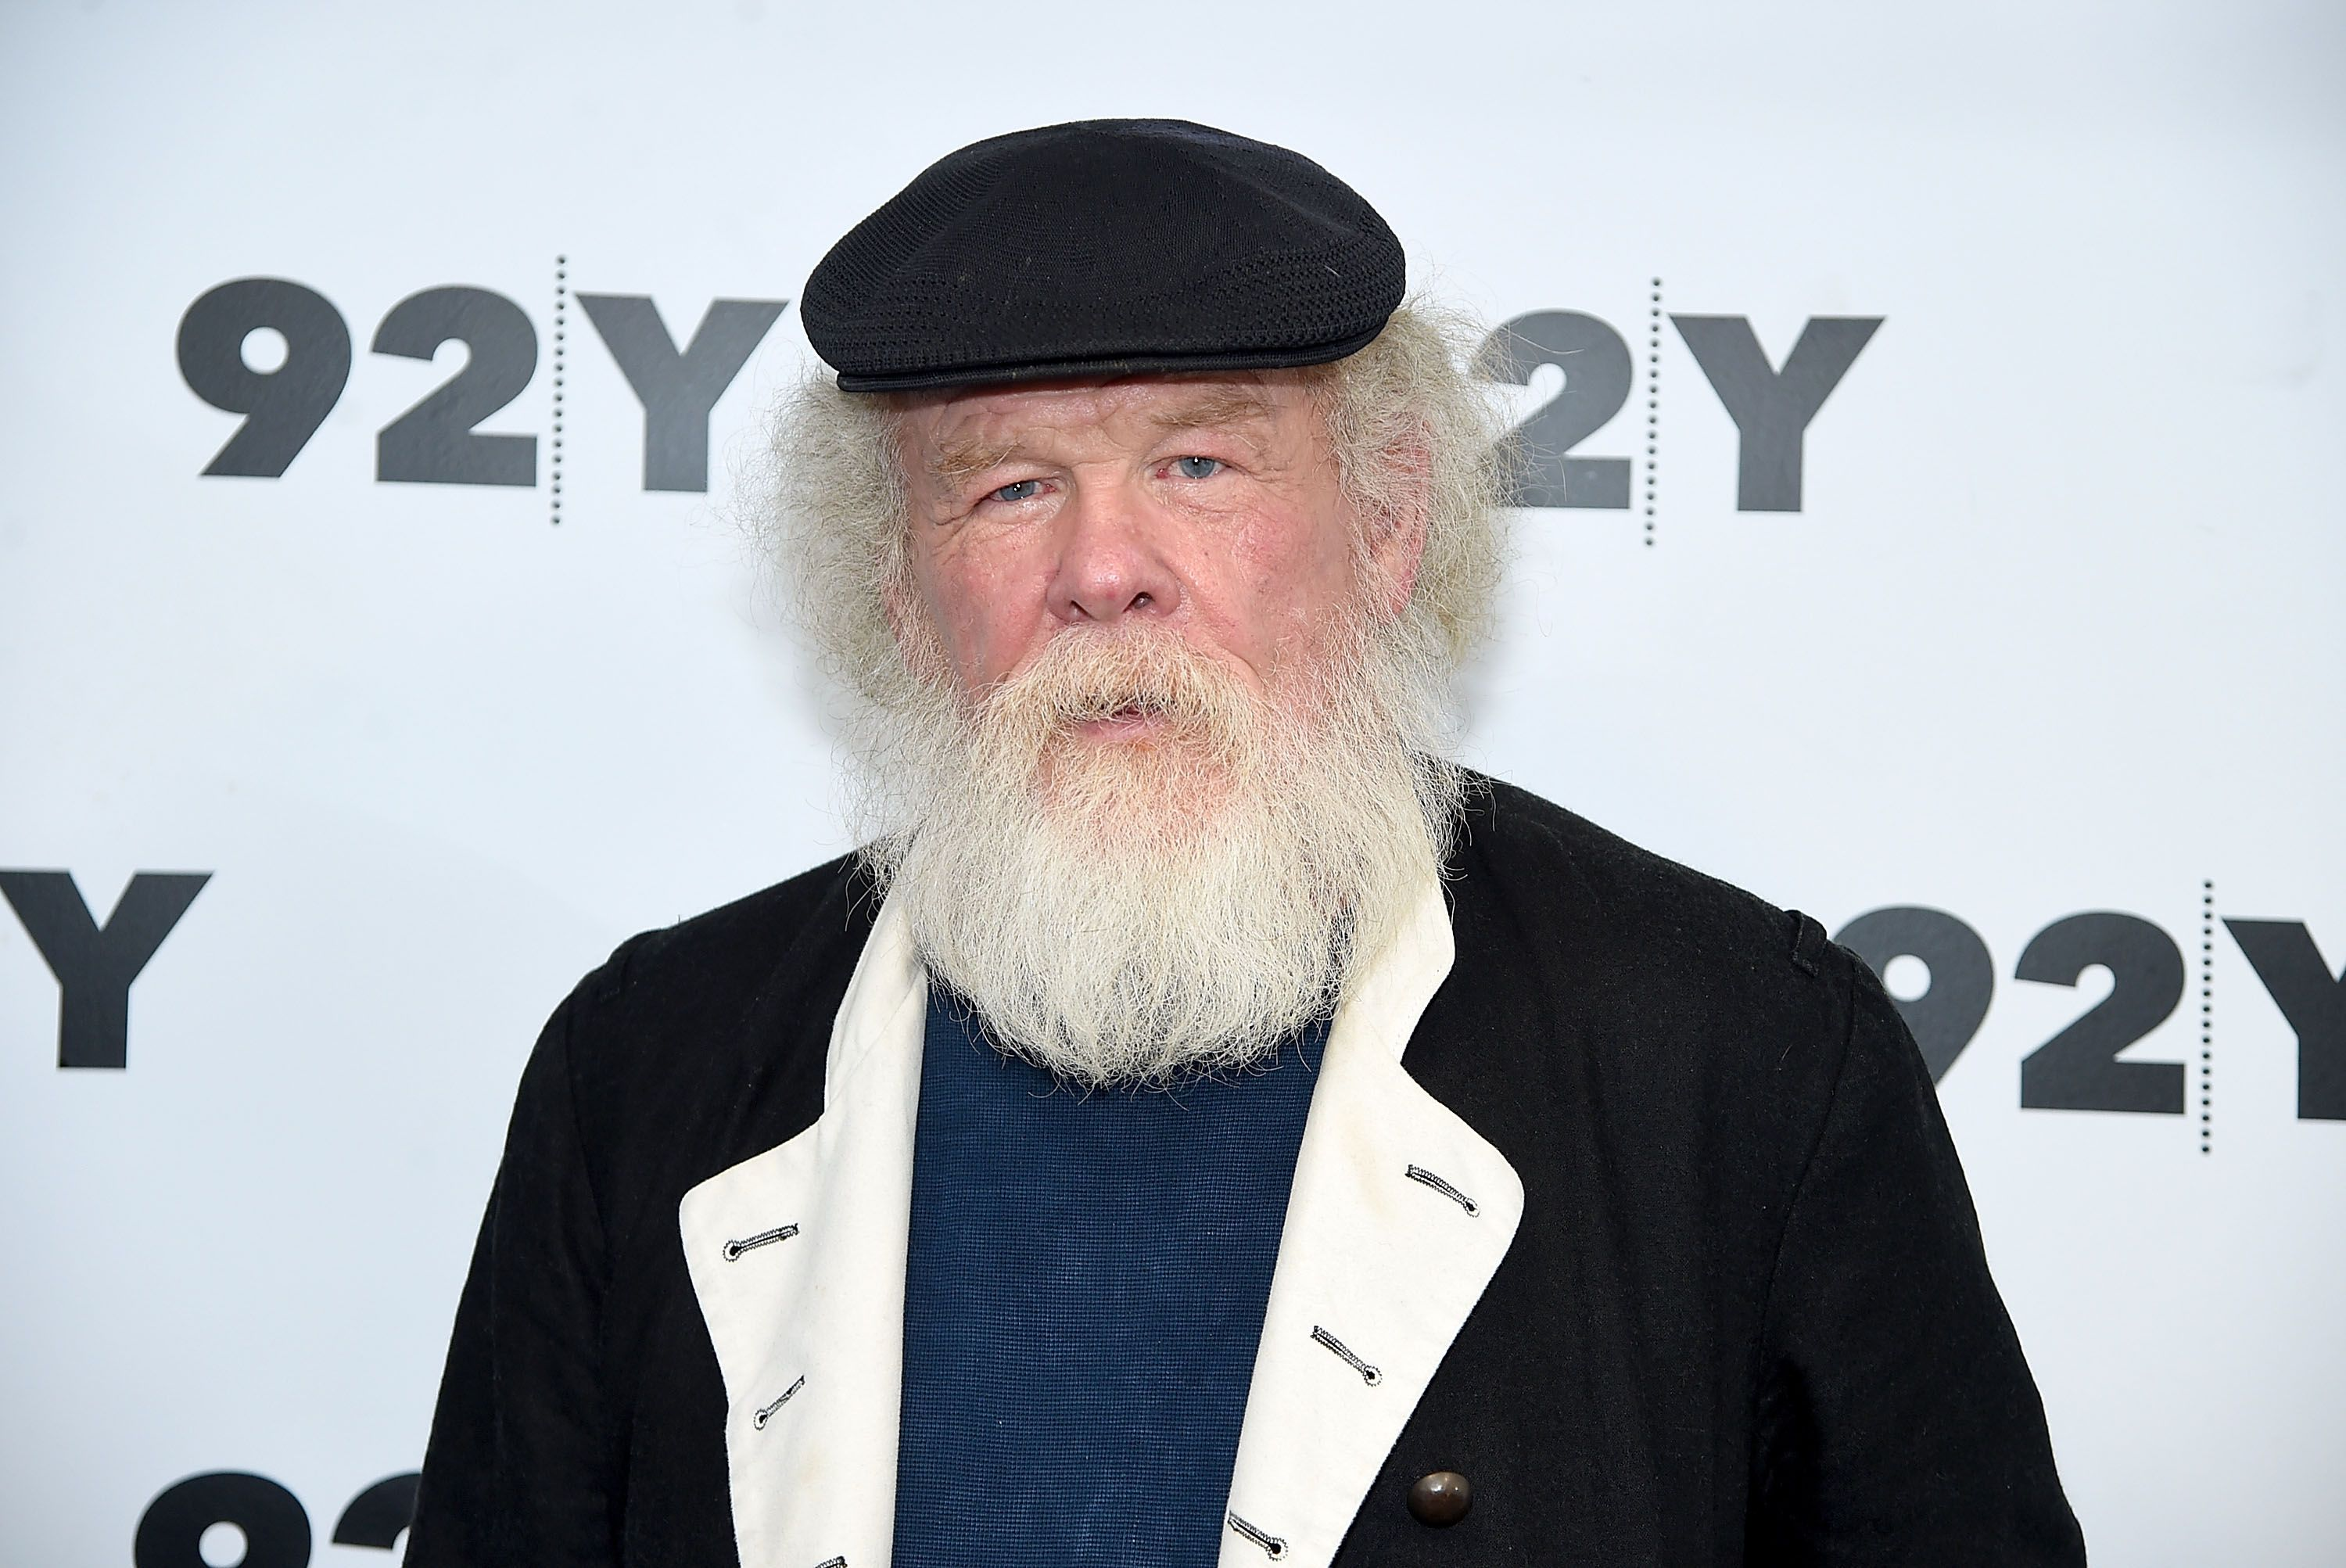 """Nick Nolte at the presentation of """"Reel Pieces"""" celebrating the career of Nick Nolte in 2018 in New York City   Source: Getty Images"""